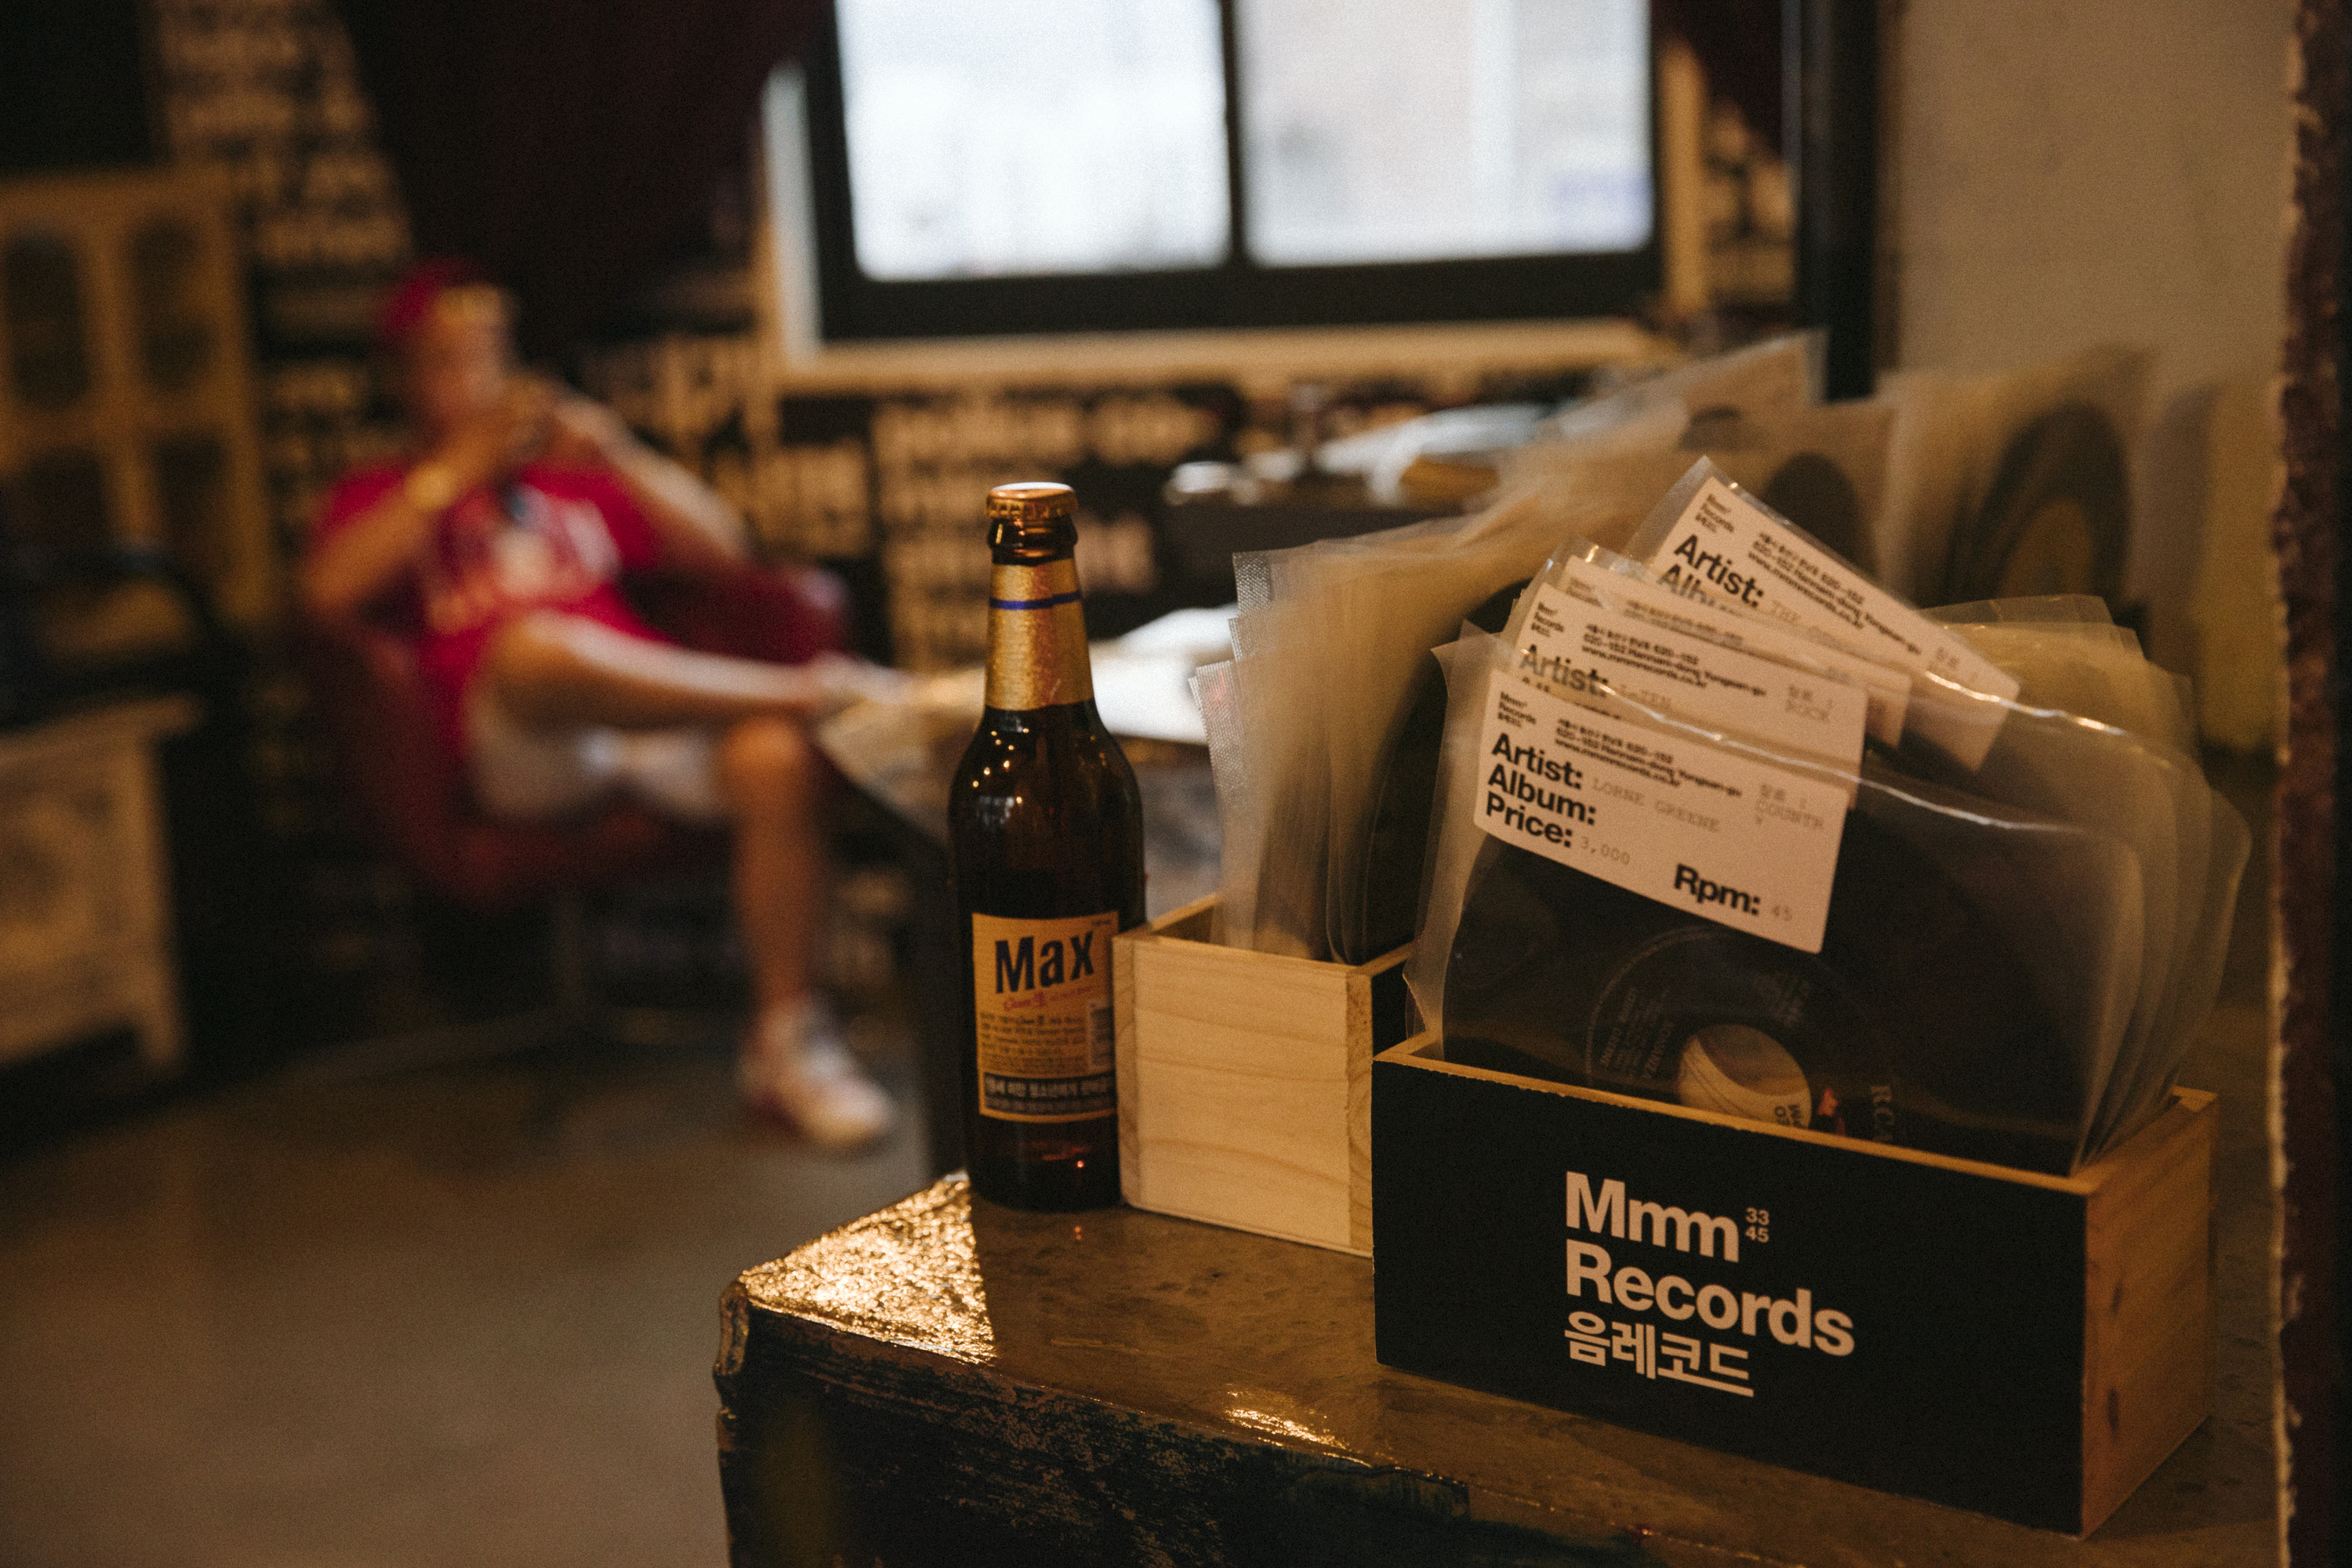 Seoul's up and coming vinyl bars